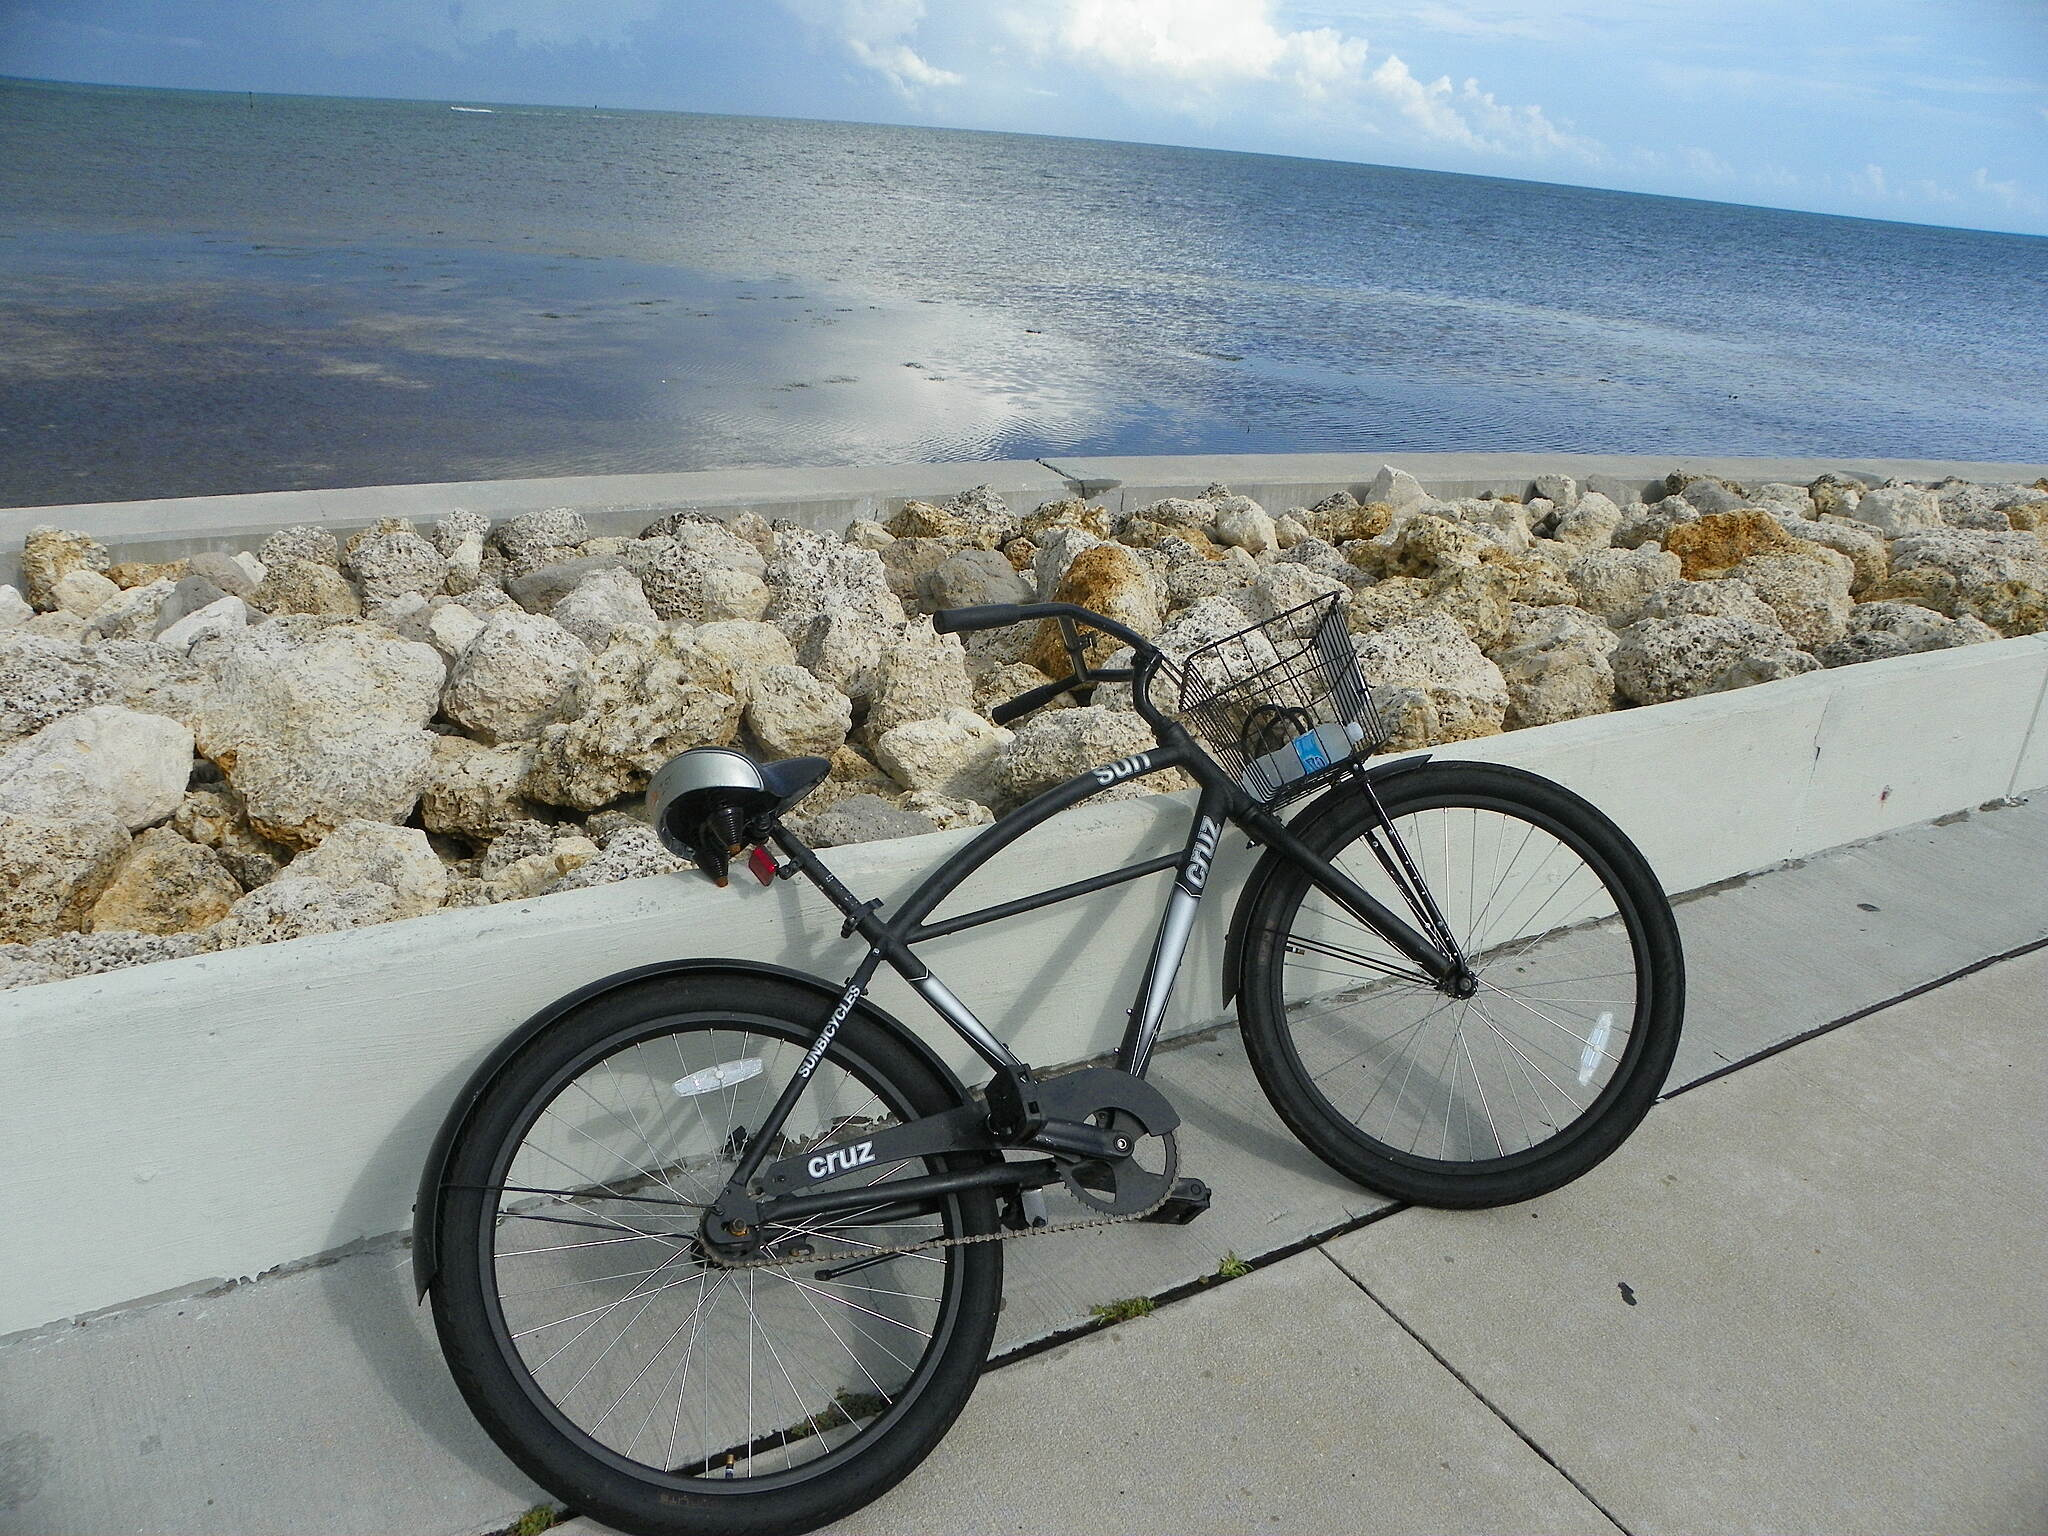 Florida Keys Overseas Heritage Trail Key West RENT A BIKE in Key West , you wont regret it.